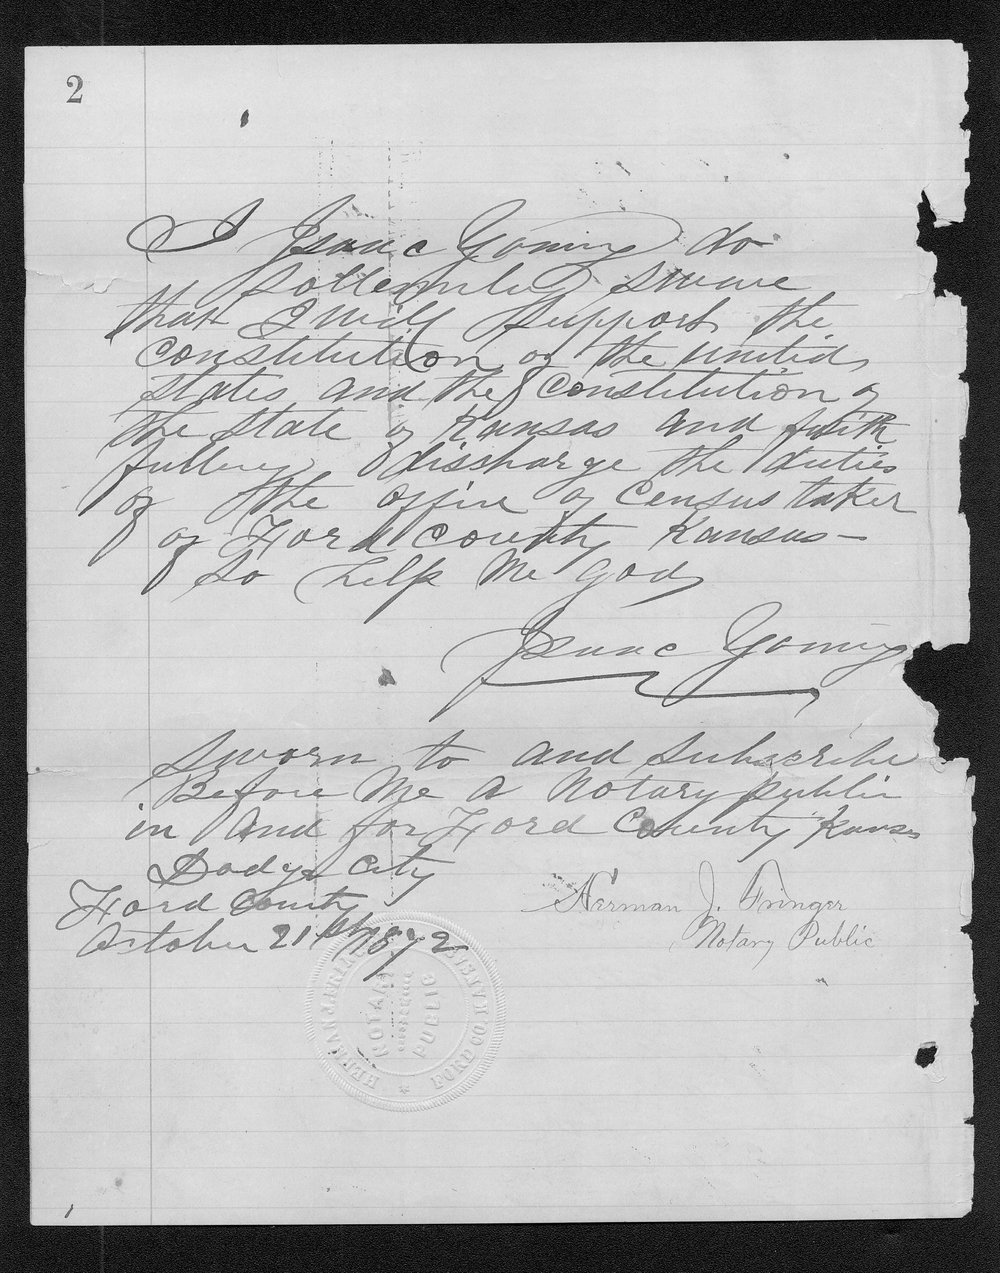 Ford County organization records - 6